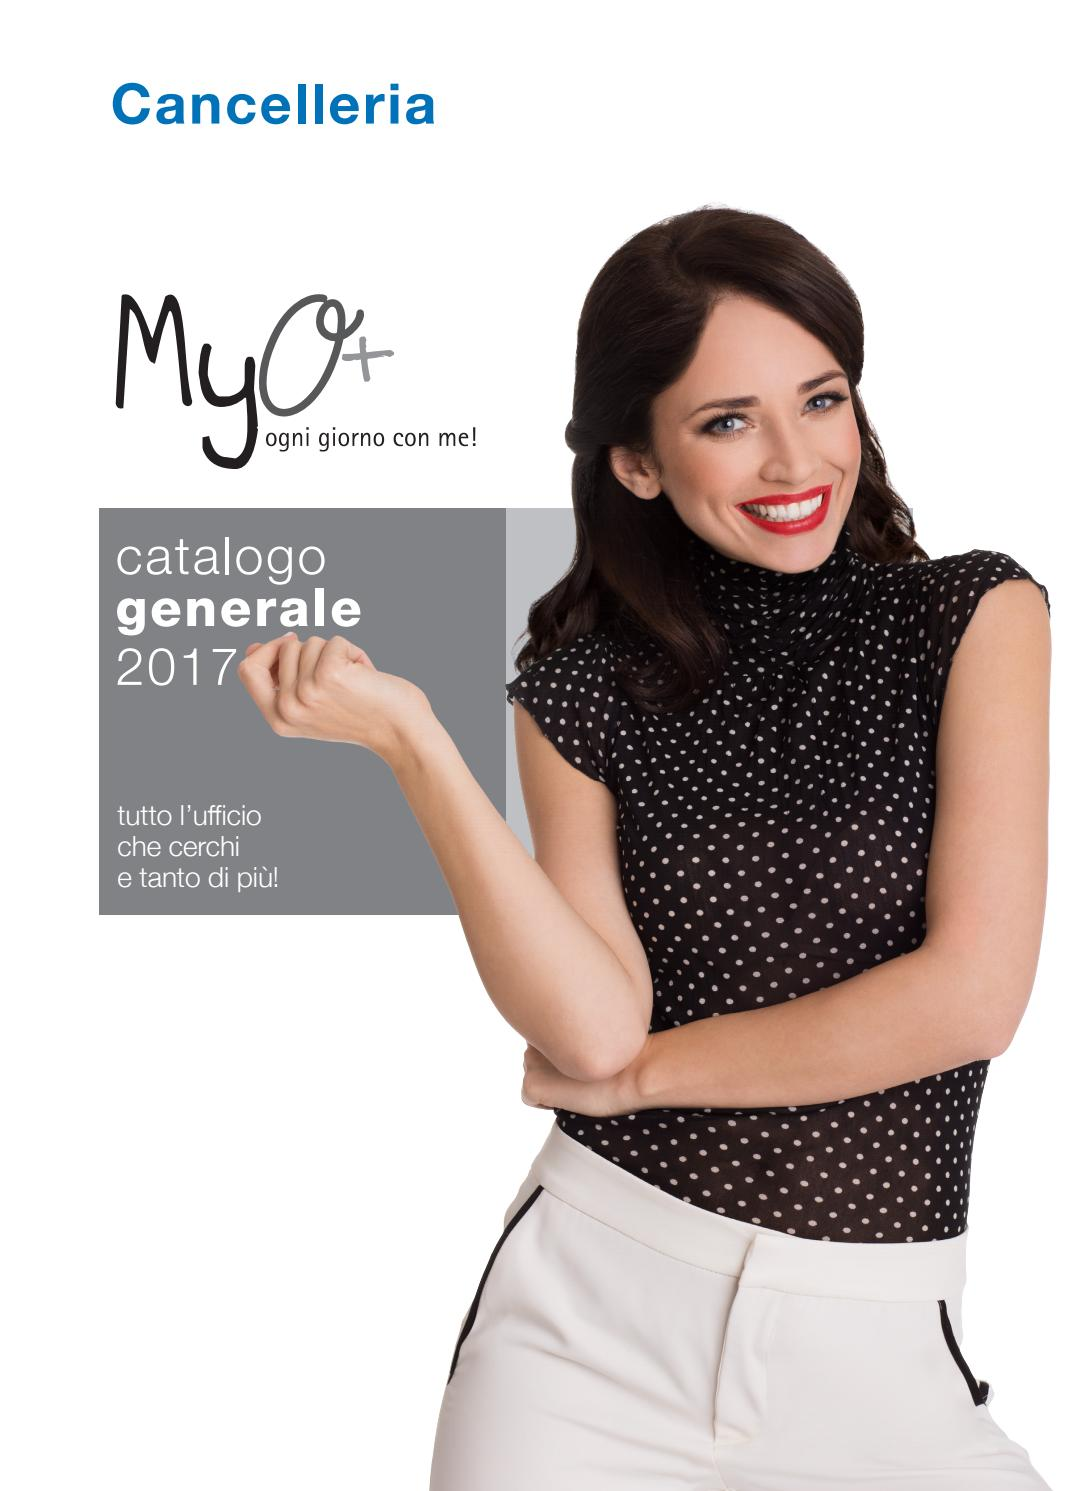 Catalogo Cancelleria Catalogo Generale Myo 2017 Gt Cancelleria By Myo S P A Issuu